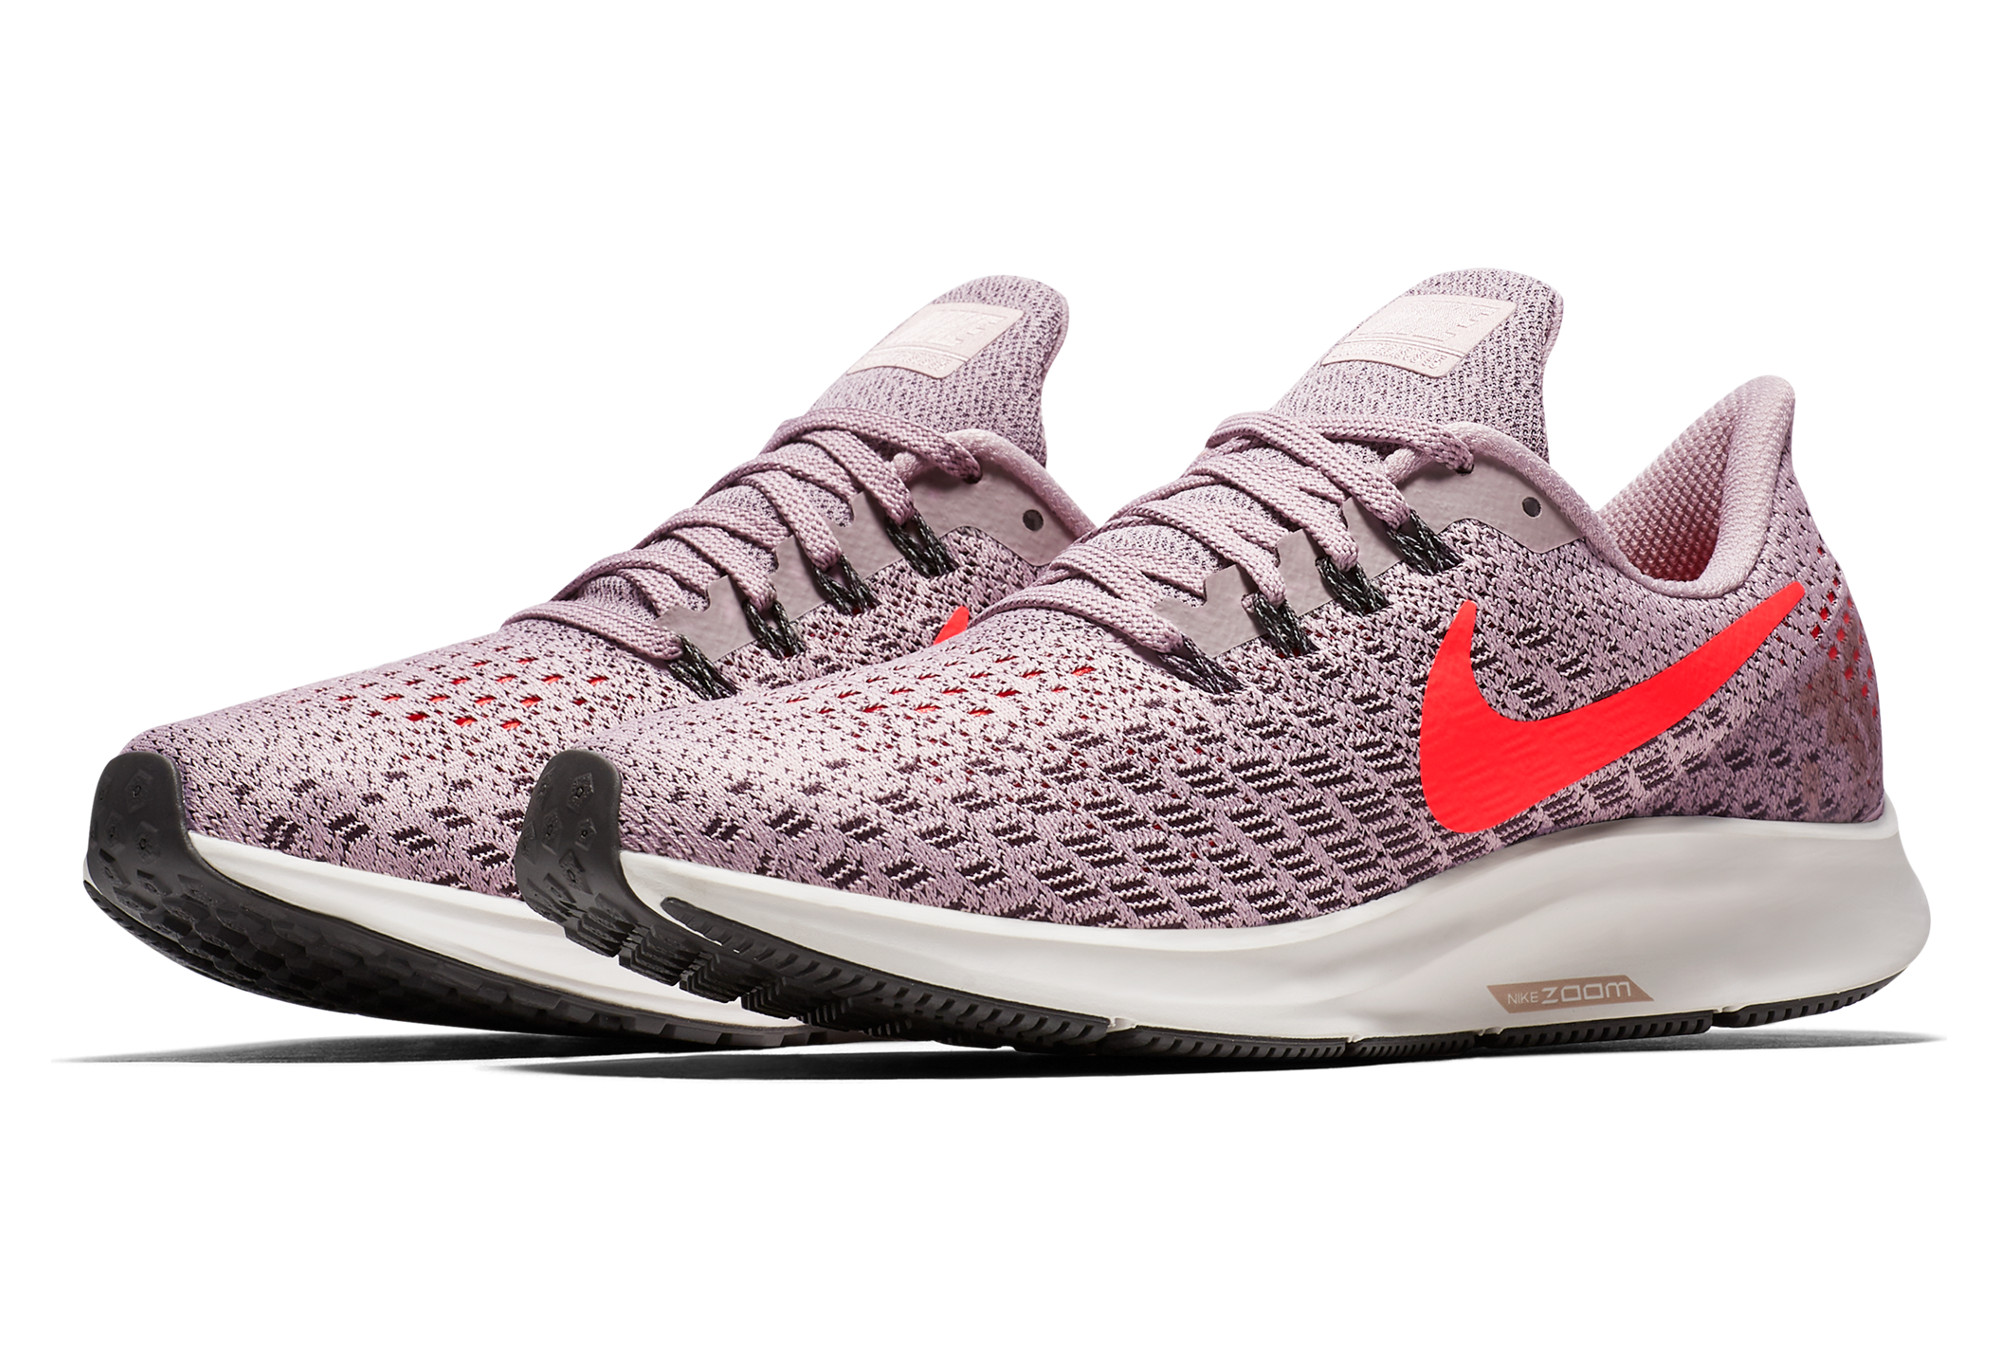 check out 5ab6f a8ce1 Chaussures de Running Femme Nike Air Zoom Pegasus 35 Rose   Blanc